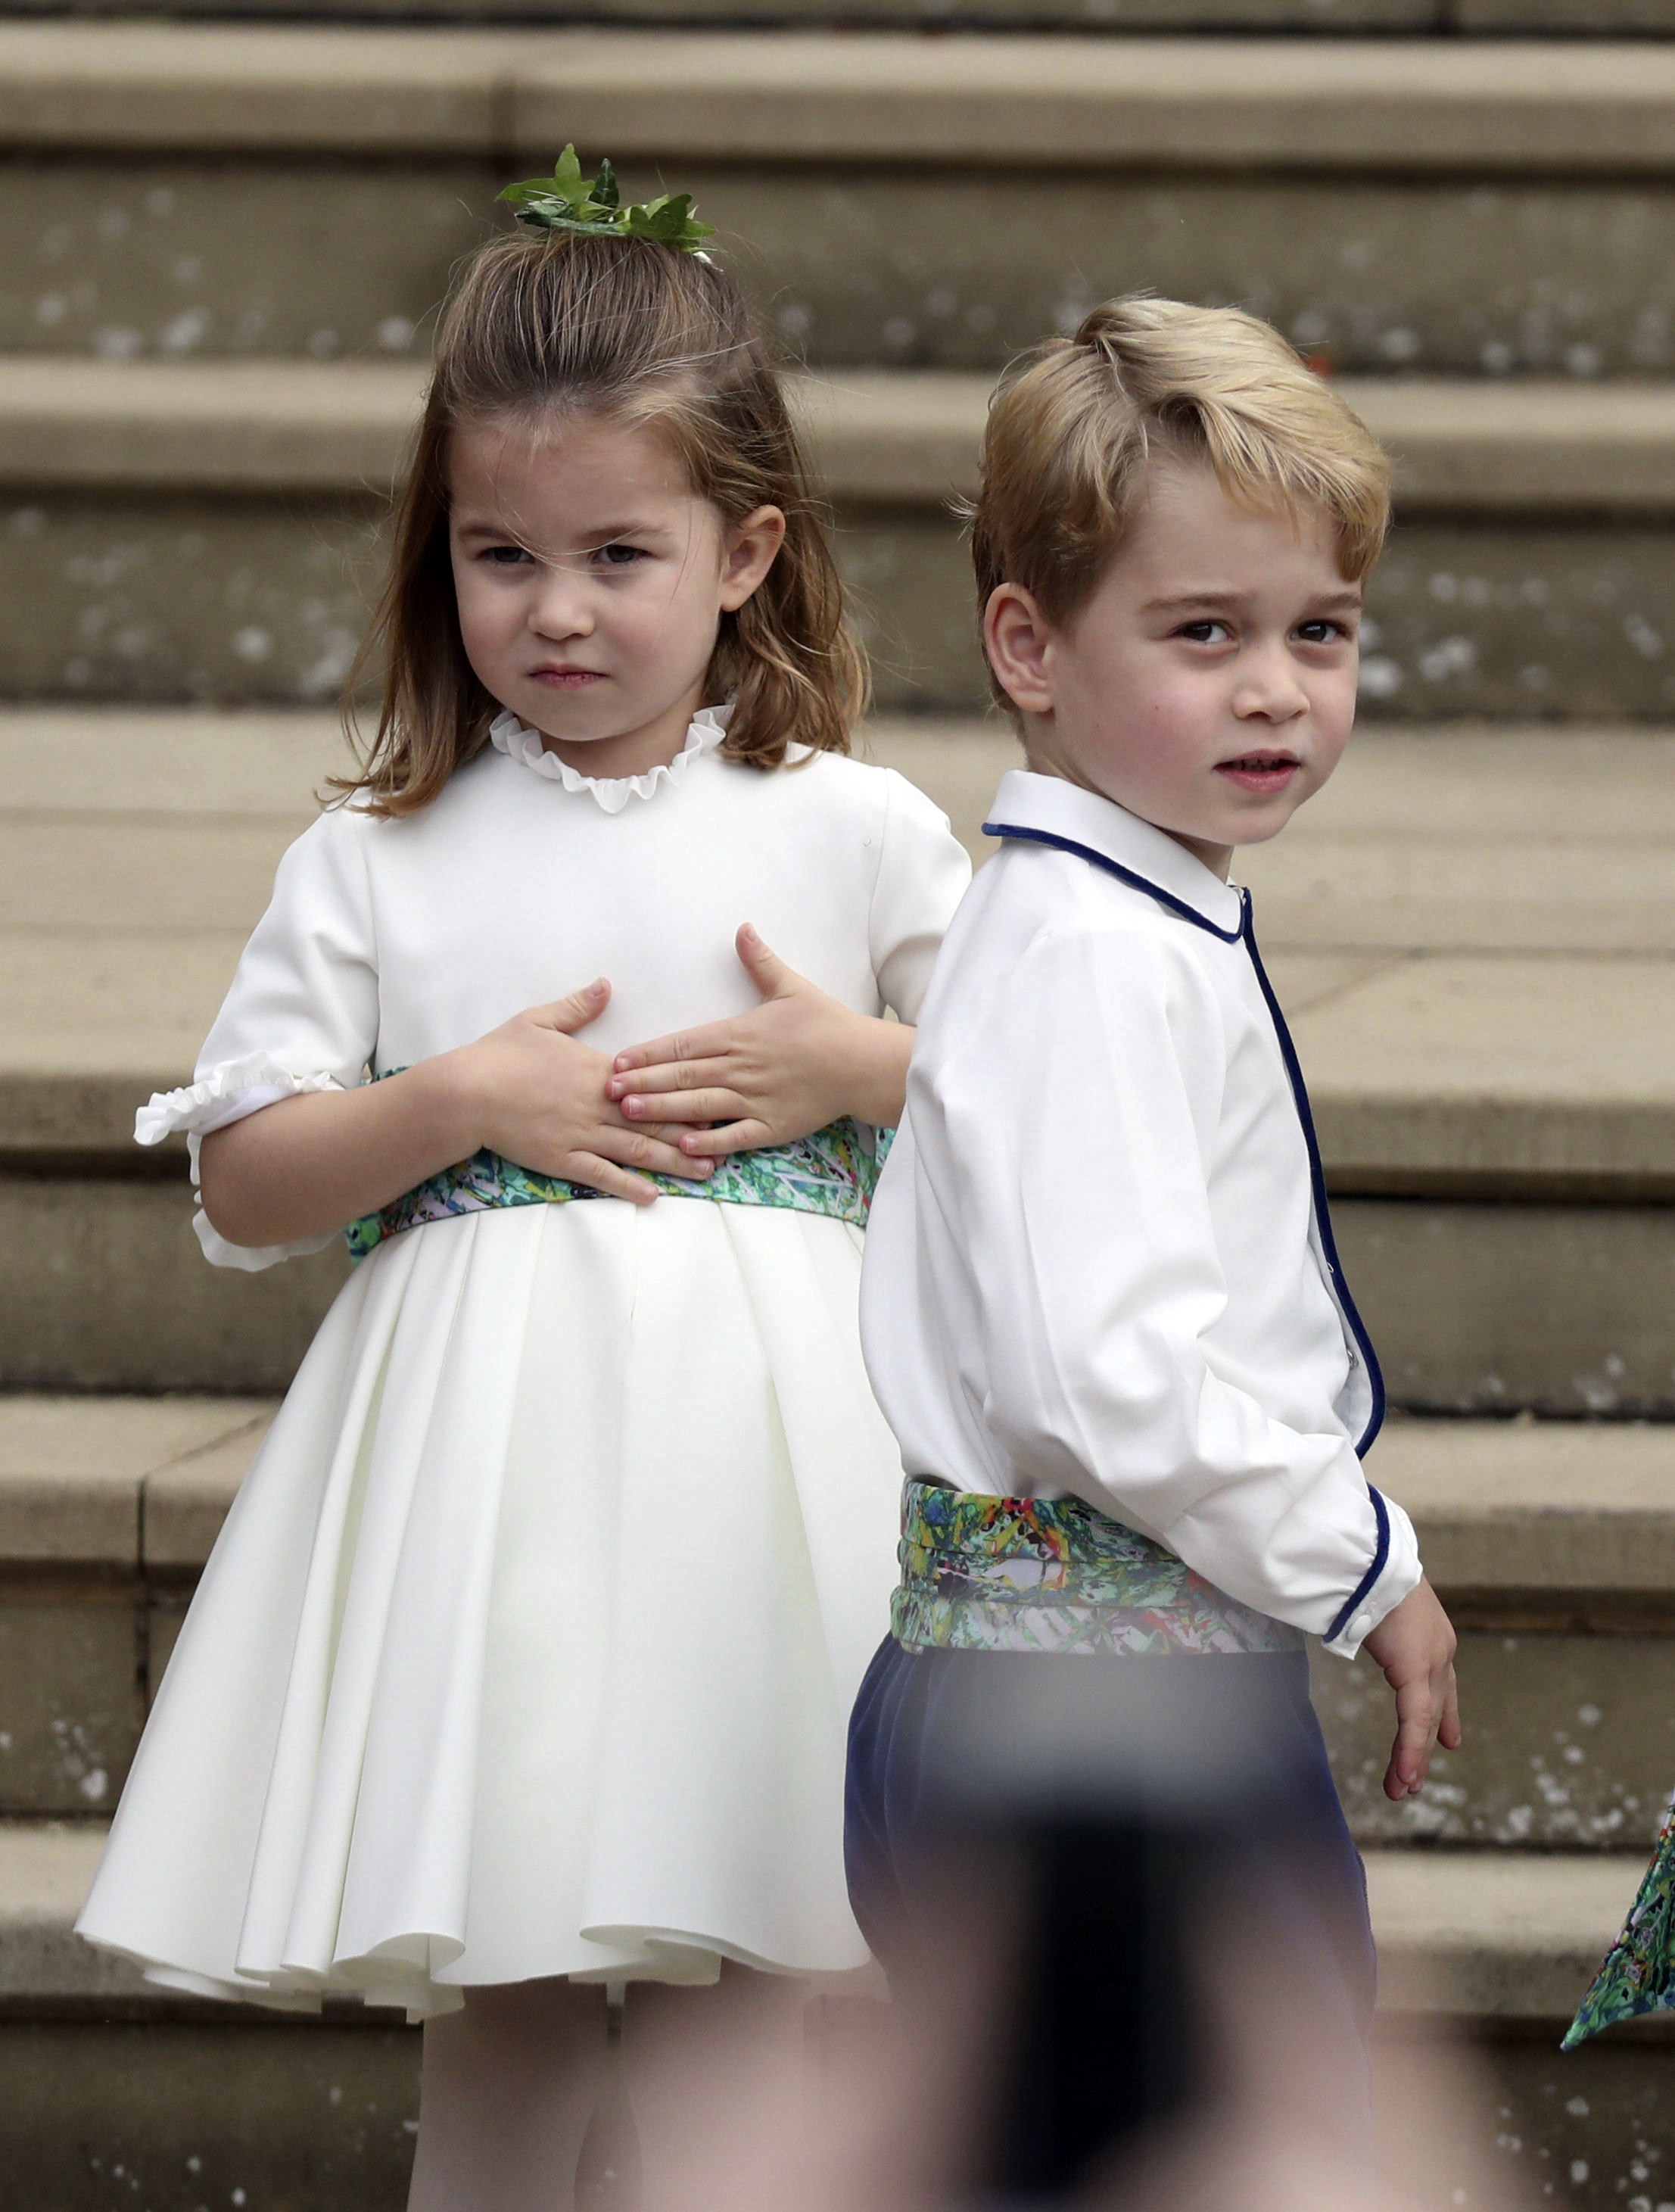 <div class='meta'><div class='origin-logo' data-origin='none'></div><span class='caption-text' data-credit='Steve Parsons/Pool via AP'>Prince George and Princess Charlotte arrive for the the wedding of Princess Eugenie of York and Jack Brooksbank at St George€™'s Chapel, Windsor Castle, near London, England.</span></div>